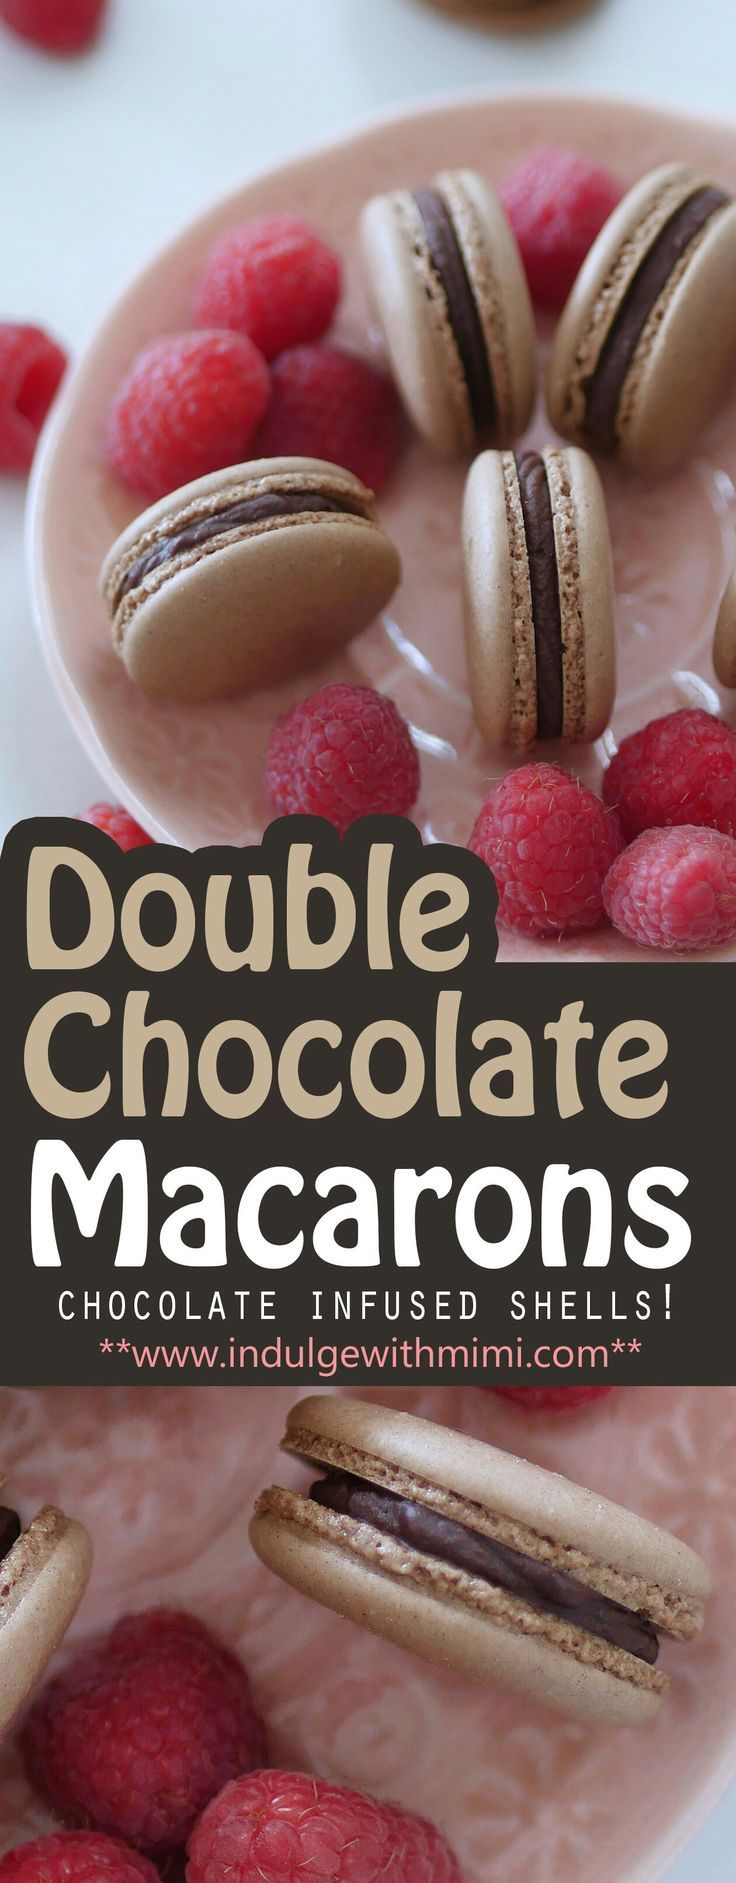 Easy way to INFUSE chocolate flavor right into your macaron shells! Plus recipe for the chocolate Ganache filing as well.